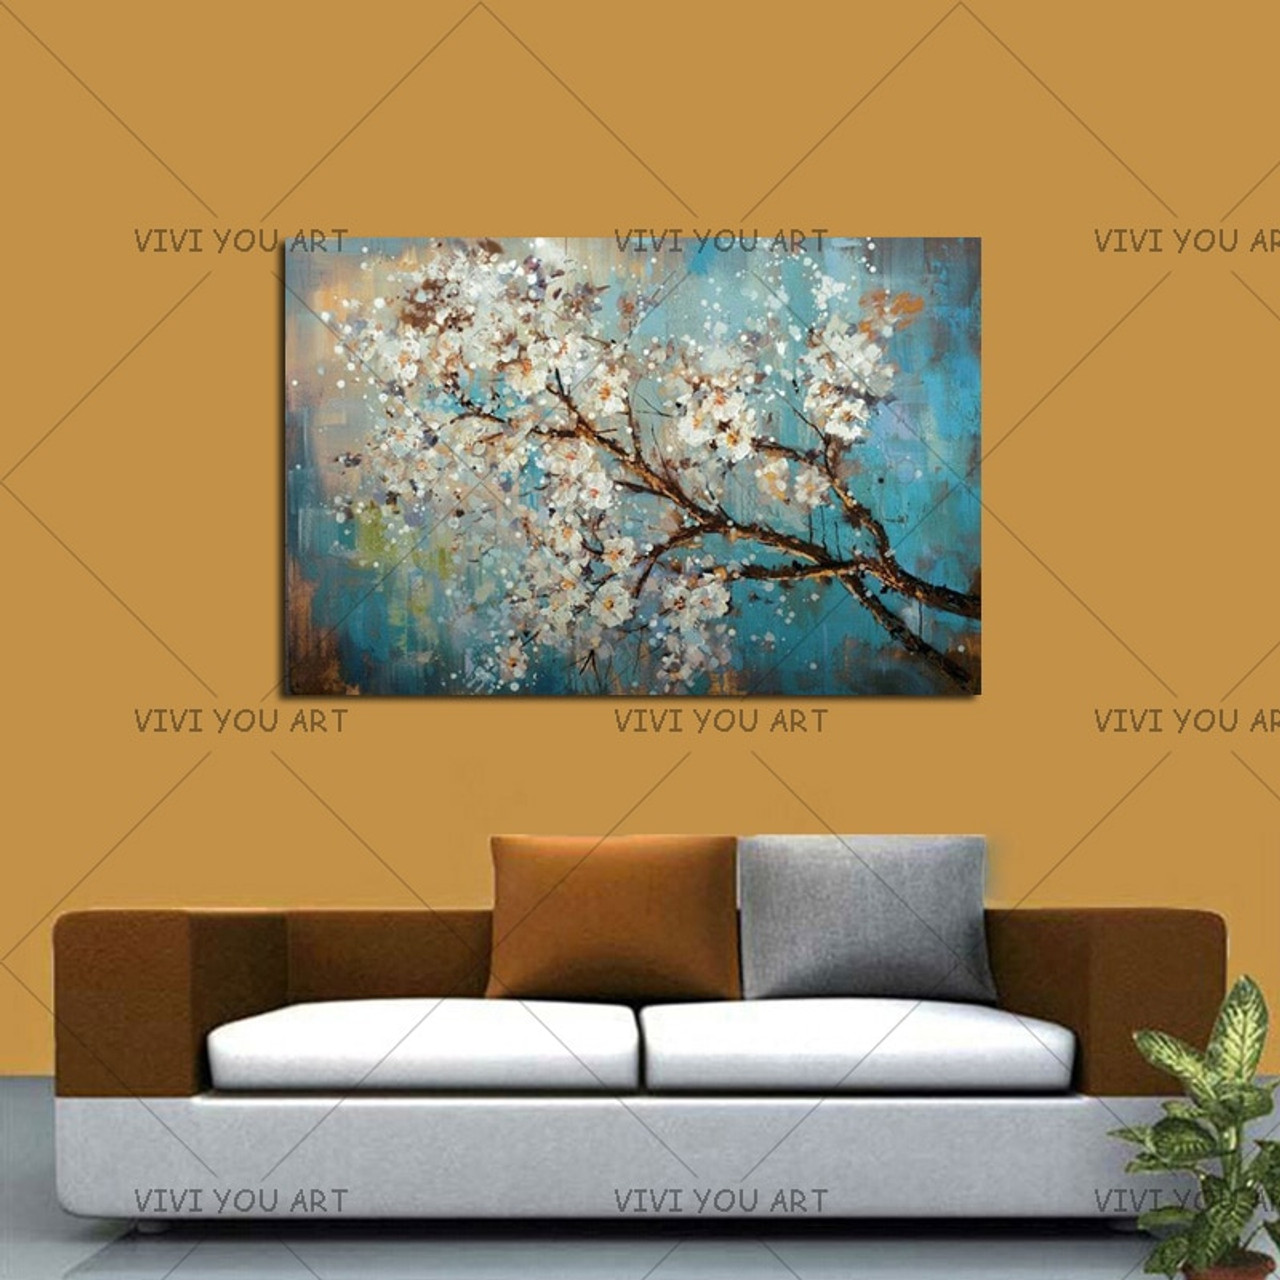 100 Handmade Large Flowers Wall Pictures Home Decorative Painting On Canvas White Plum Blossom Paintings